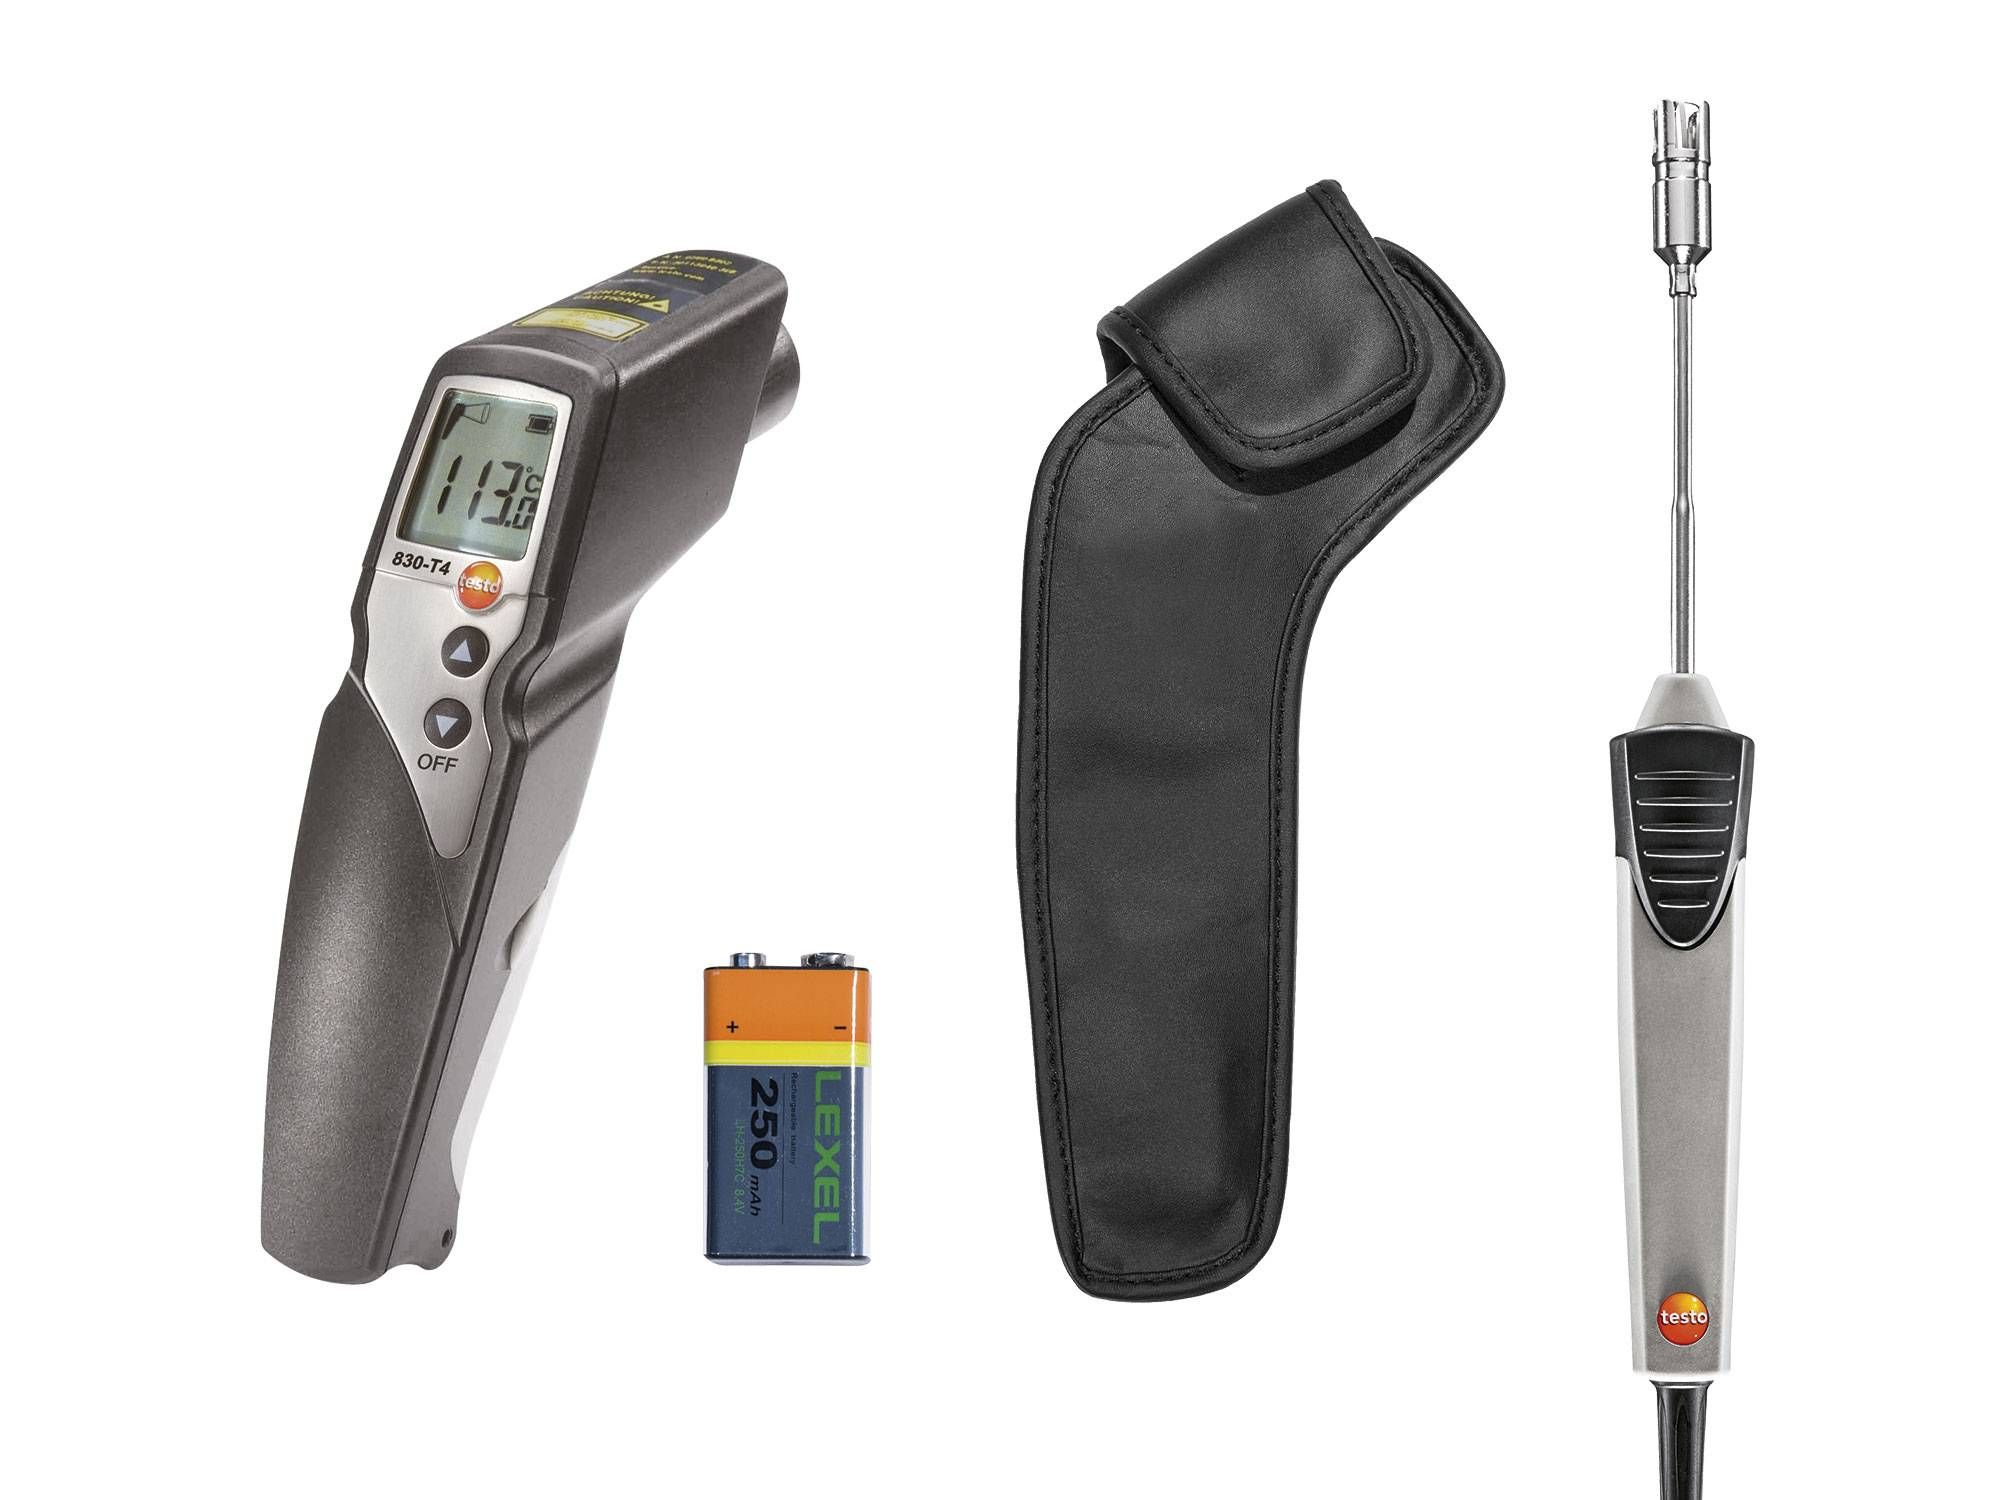 Set testo 830-T4 - Infrared thermometer - Delivery scope